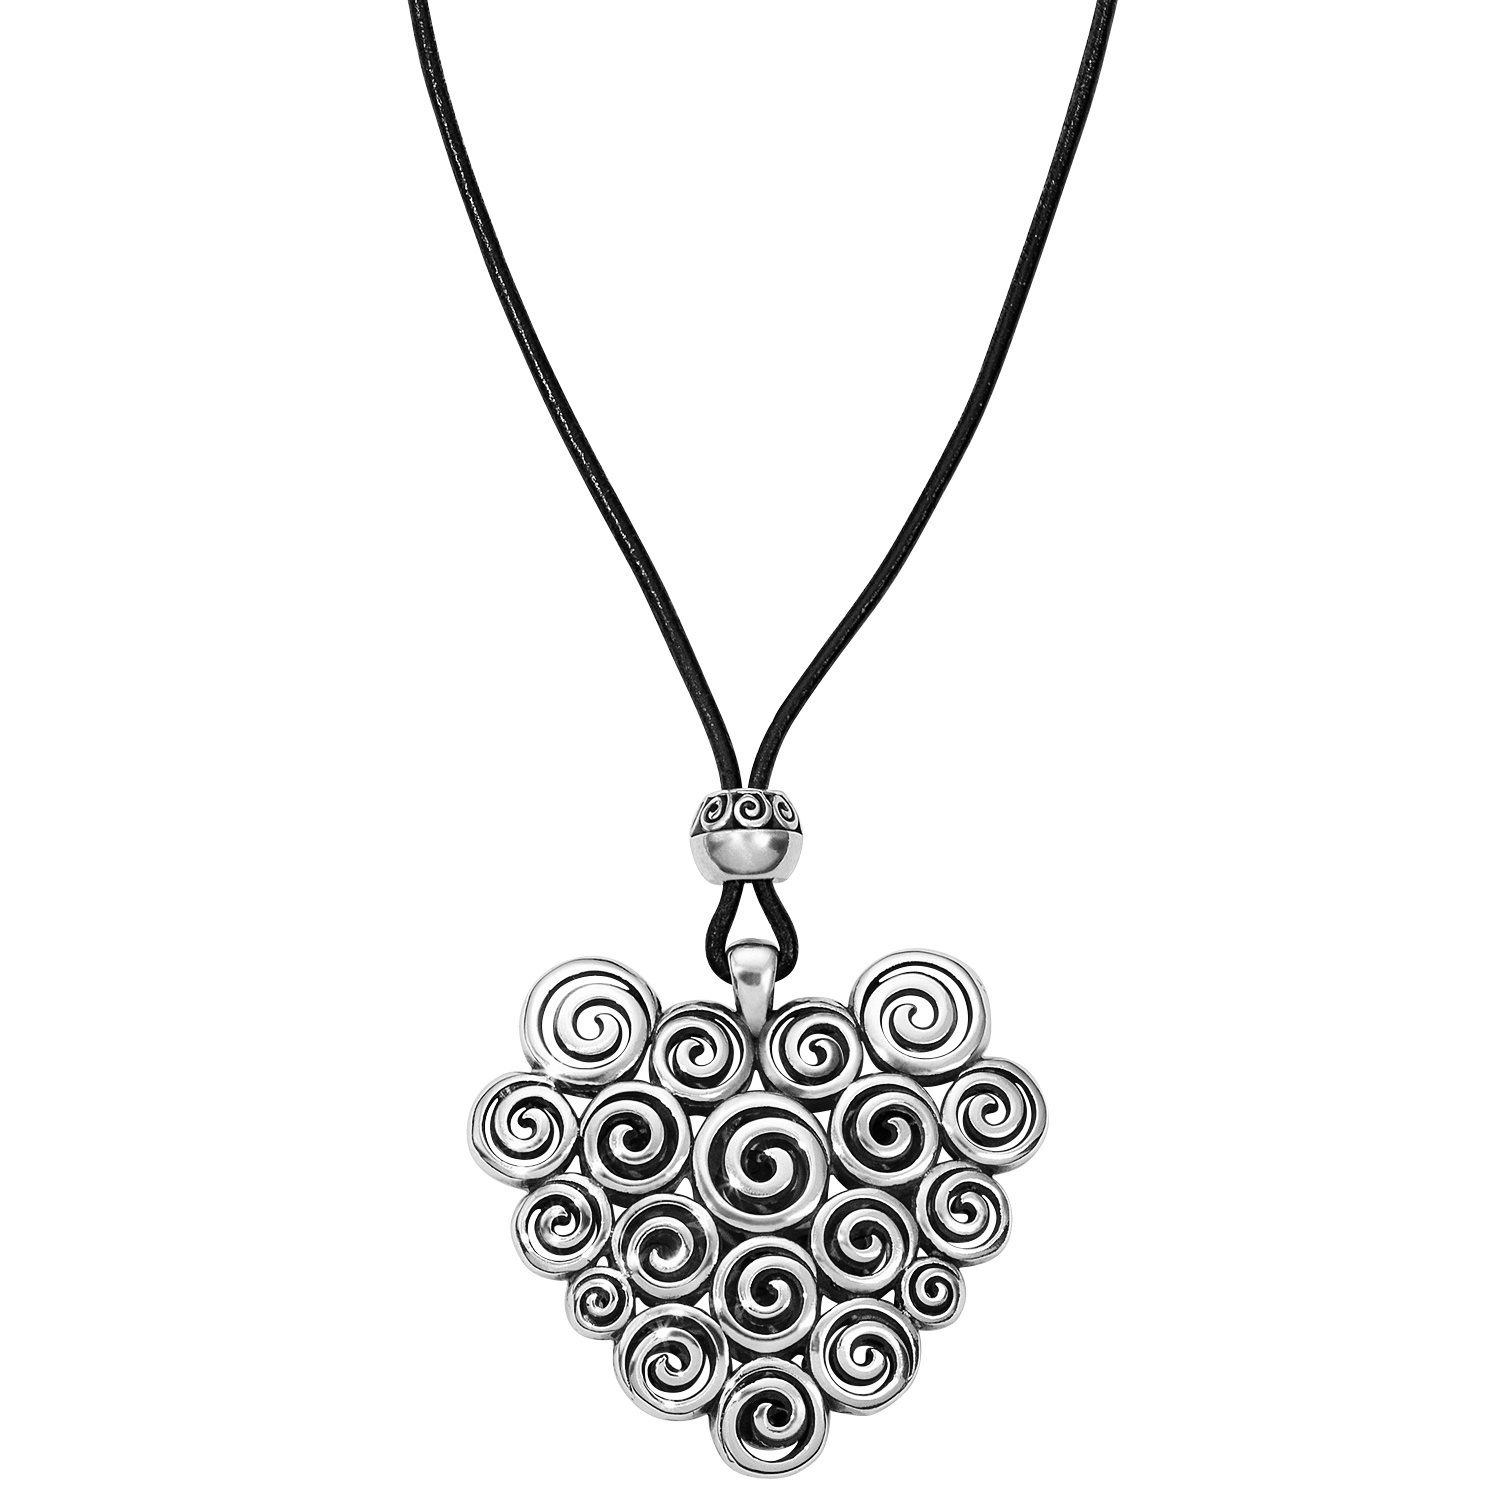 size pendant necklace product heart necklaces os alternate vertigo view long